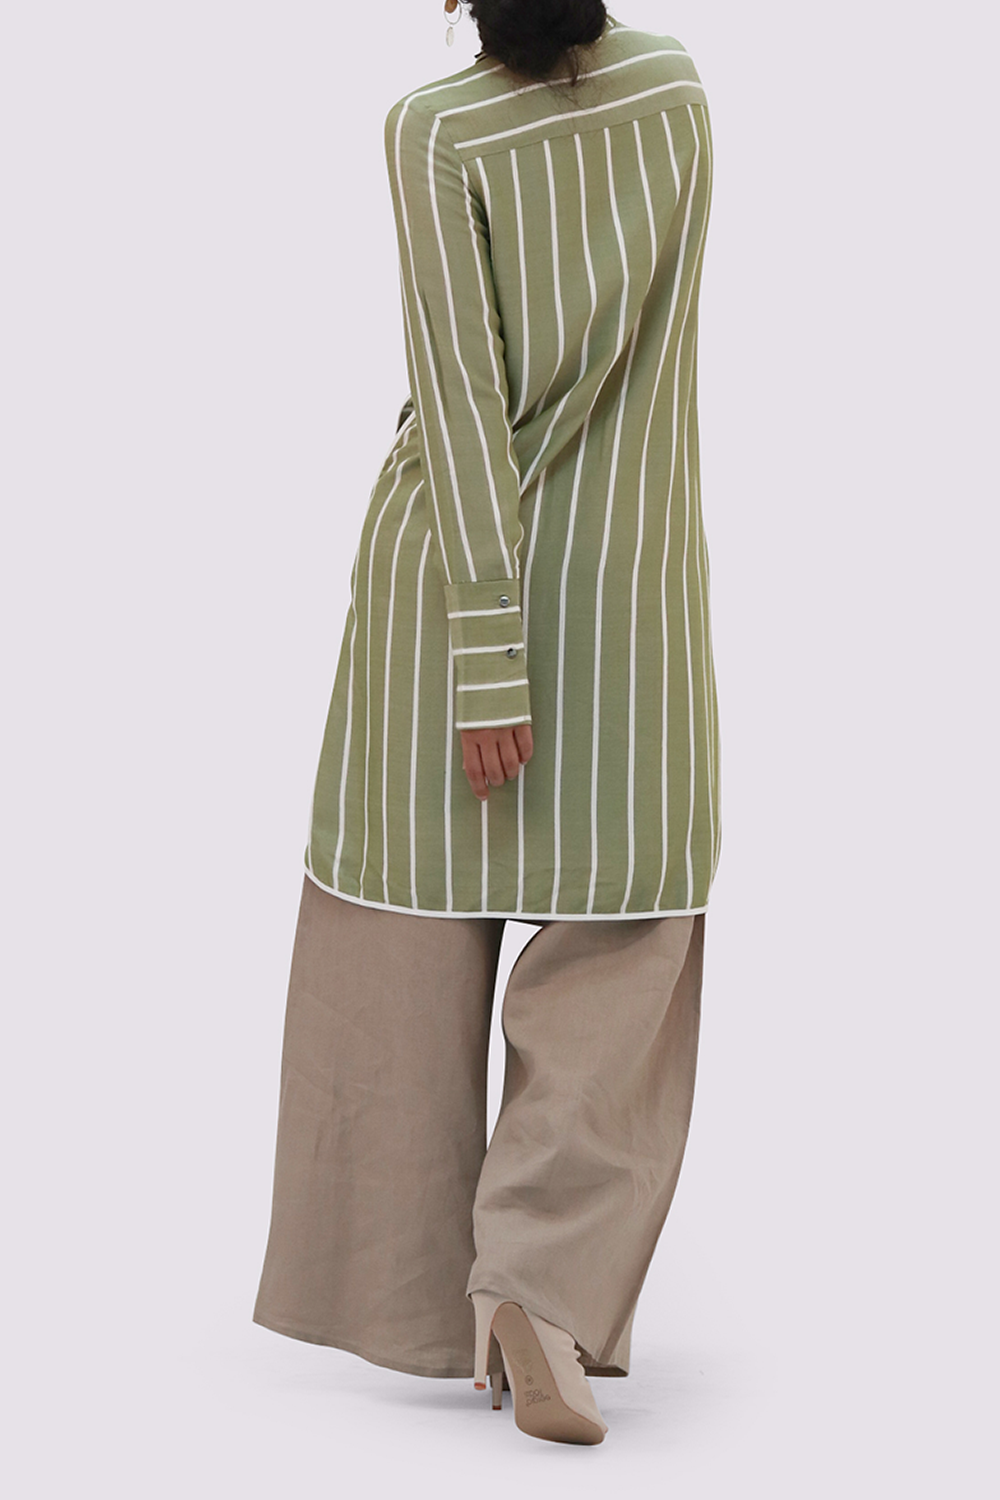 Olive shirtdress with white stripes